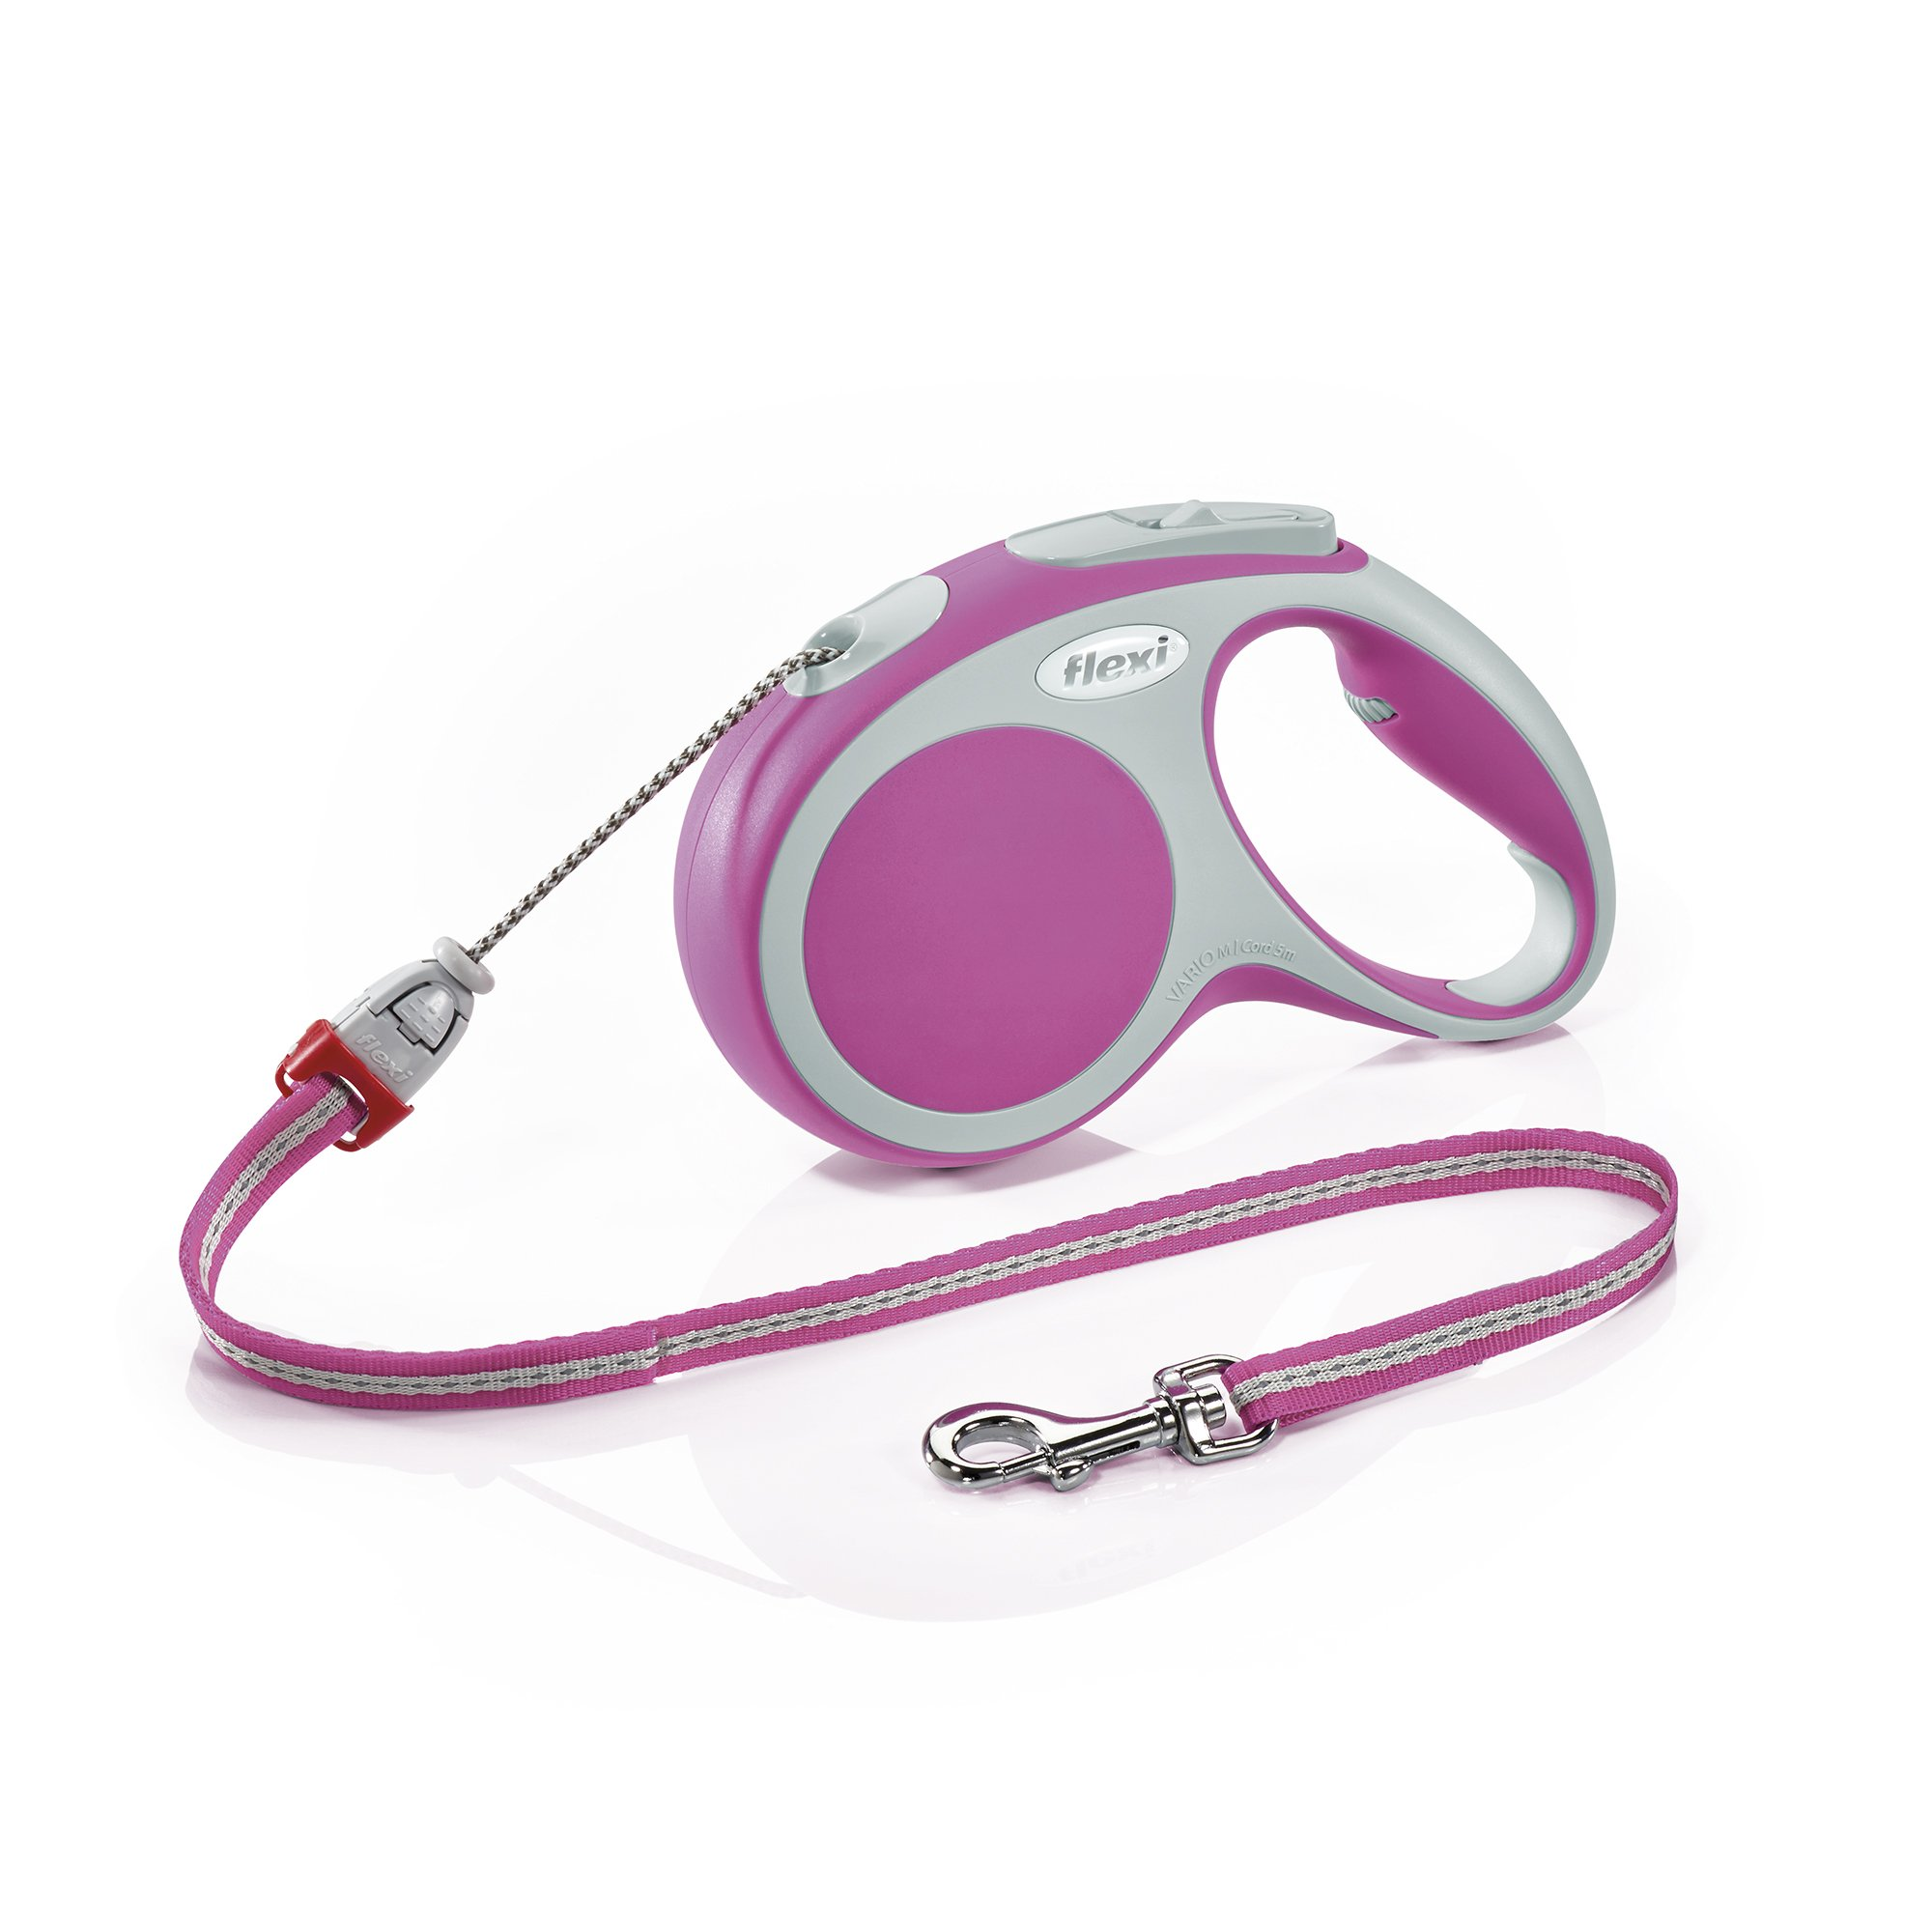 Flexi Vario Retractable Dog Leash (Cord), 16 ft, Medium, Pink by Flexi